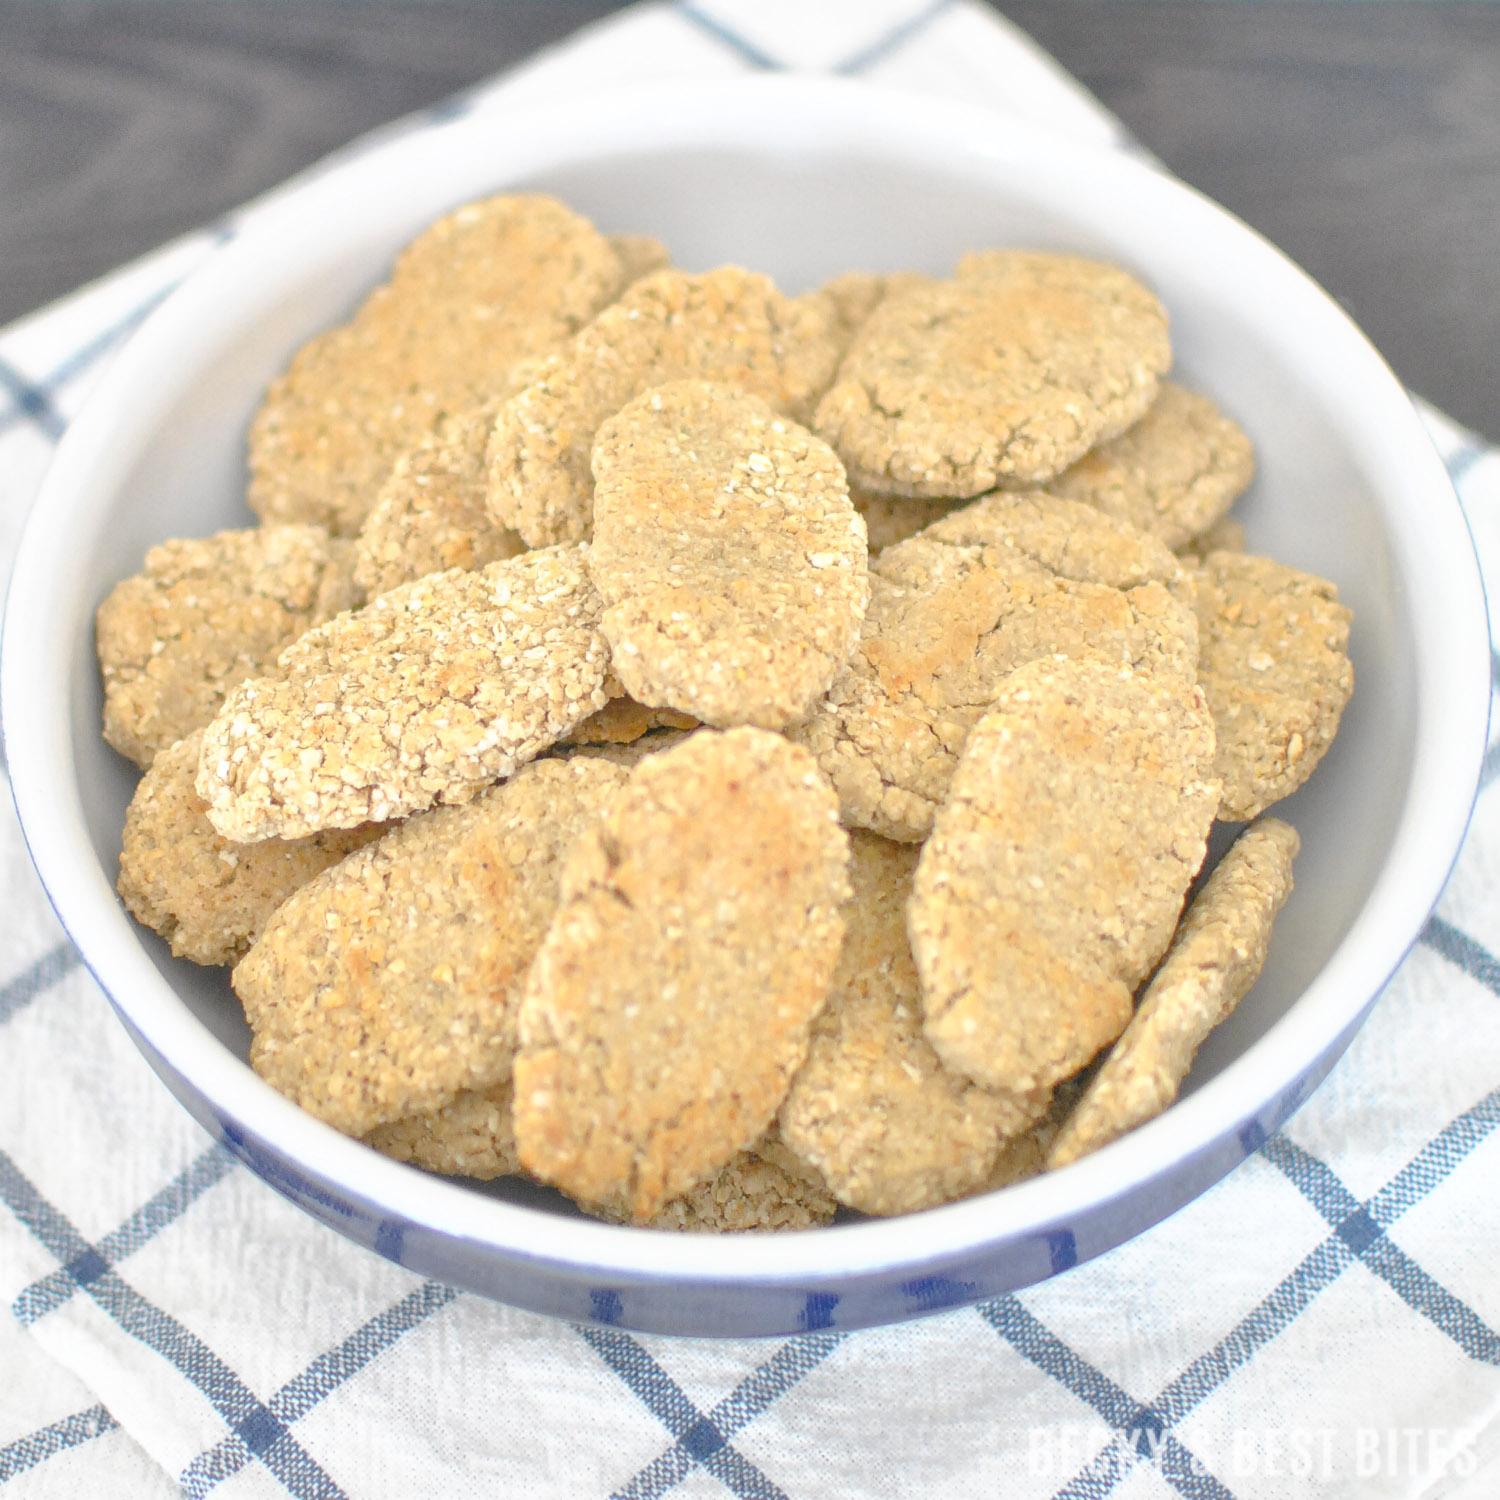 3 Ingredient Baby Teething Biscuits is a healthy and easy recipe for infants and toddlers. Oats, bananas and coconut oil combine with optional spices to make a yummy and cheaper alternative to commercial teether wafers. | beckysbestbites.com